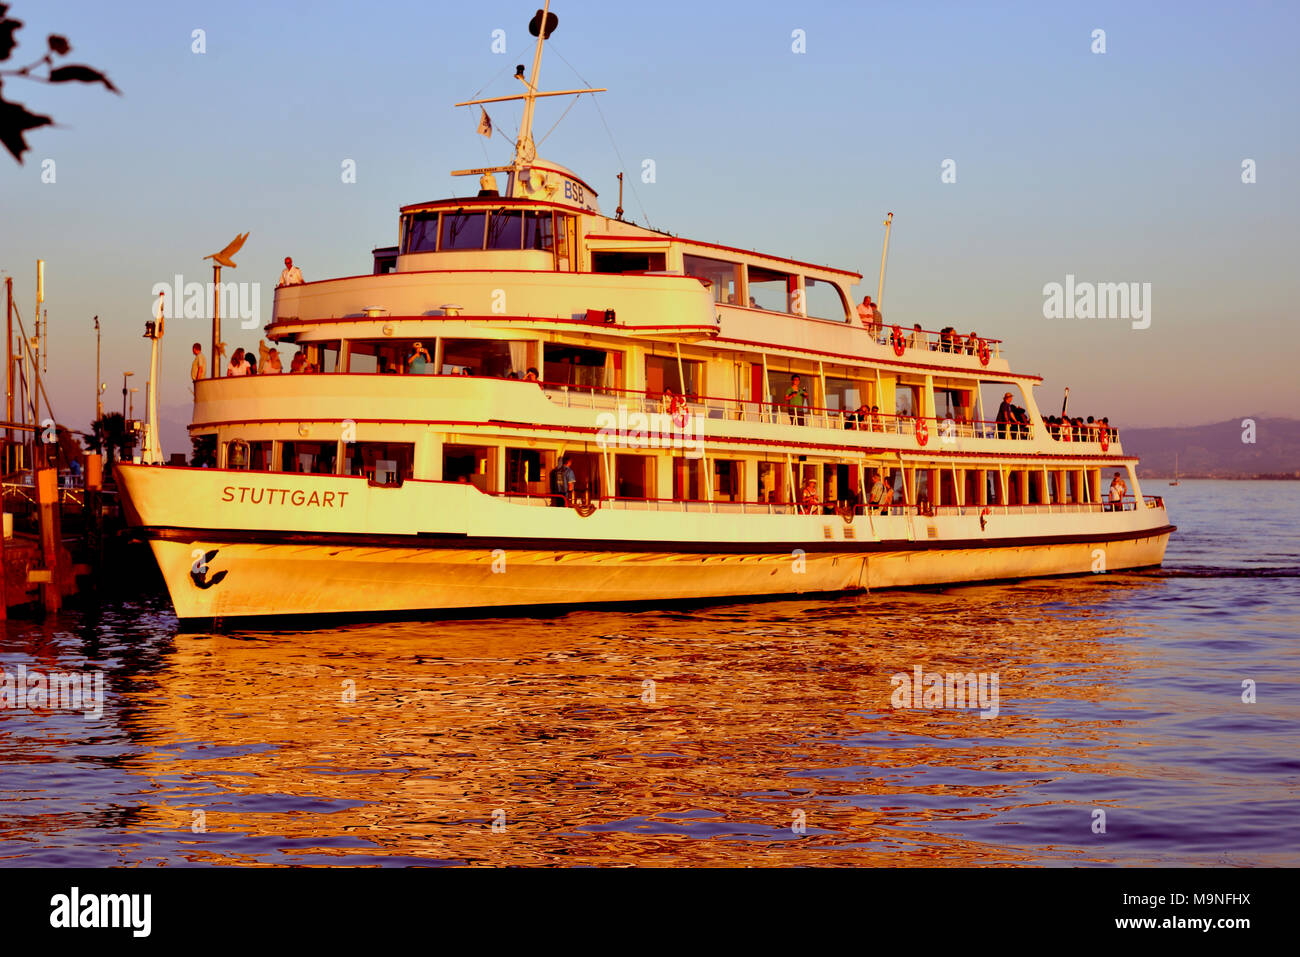 A cruise ship docks in the late evening sunset after taking passengers around Lake Constance, Germany and Switzerland. - Stock Image